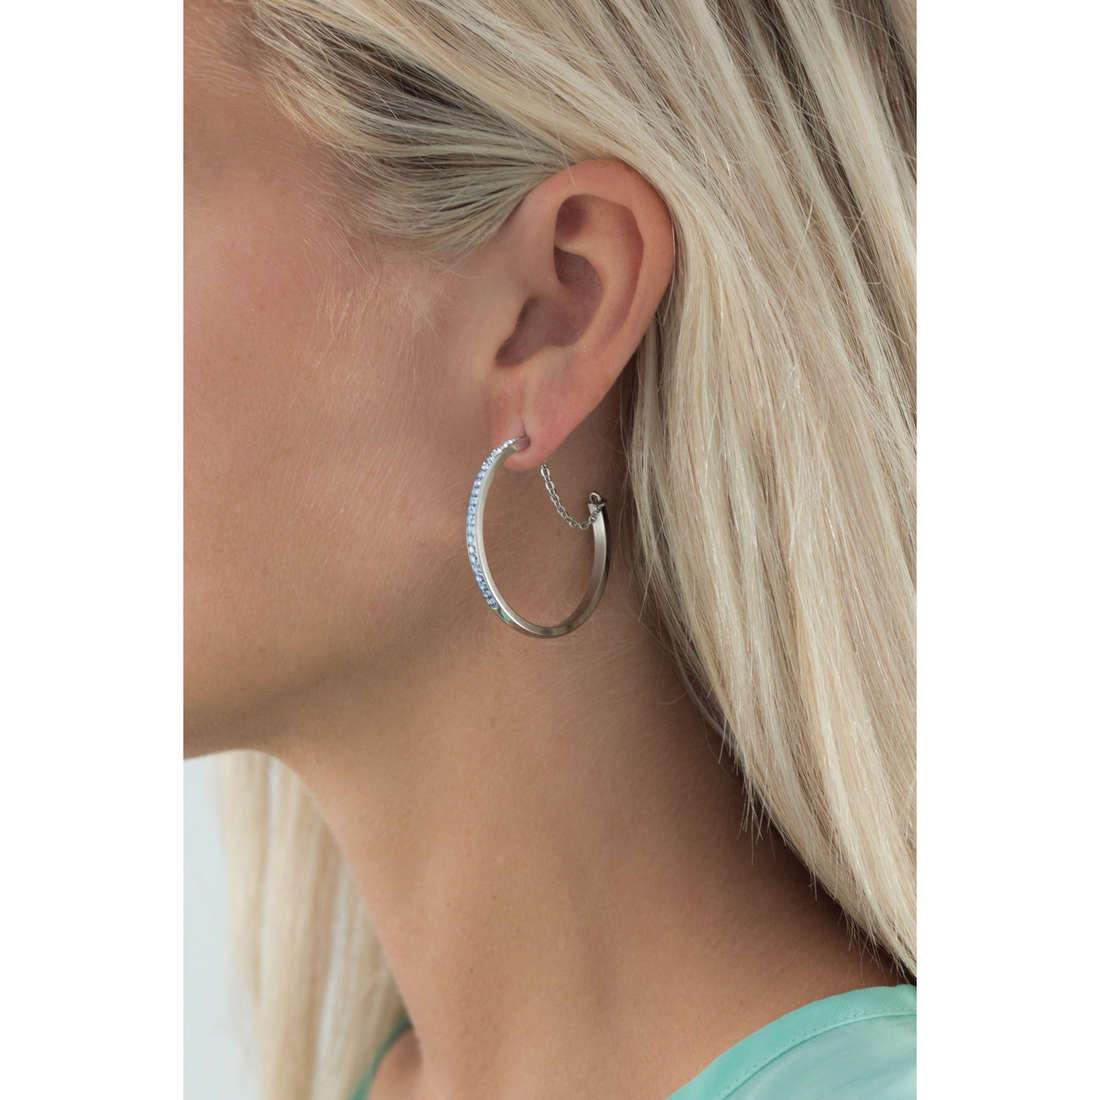 Brosway boucles d'oreille Btring femme BER27 indosso